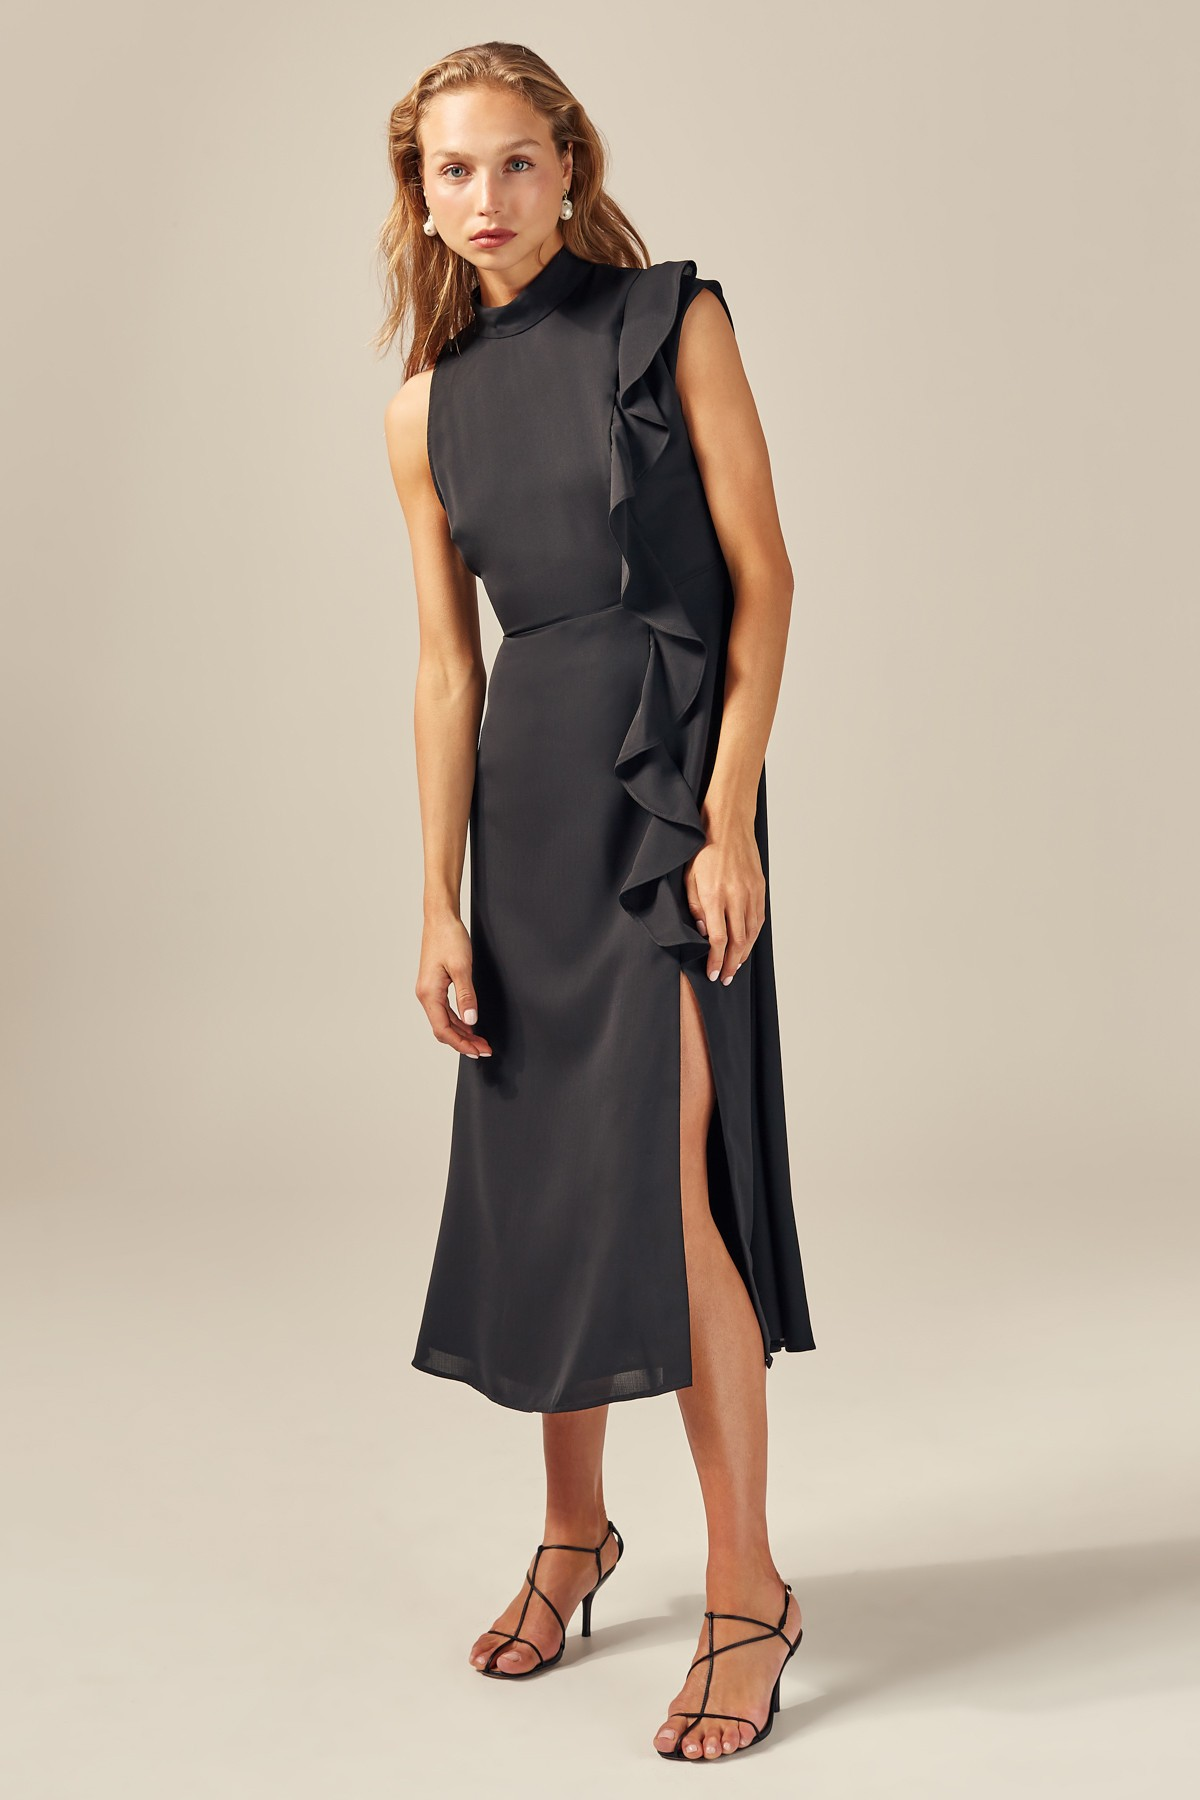 C/MEO COLLECTIVEのAUGMENT DRESS